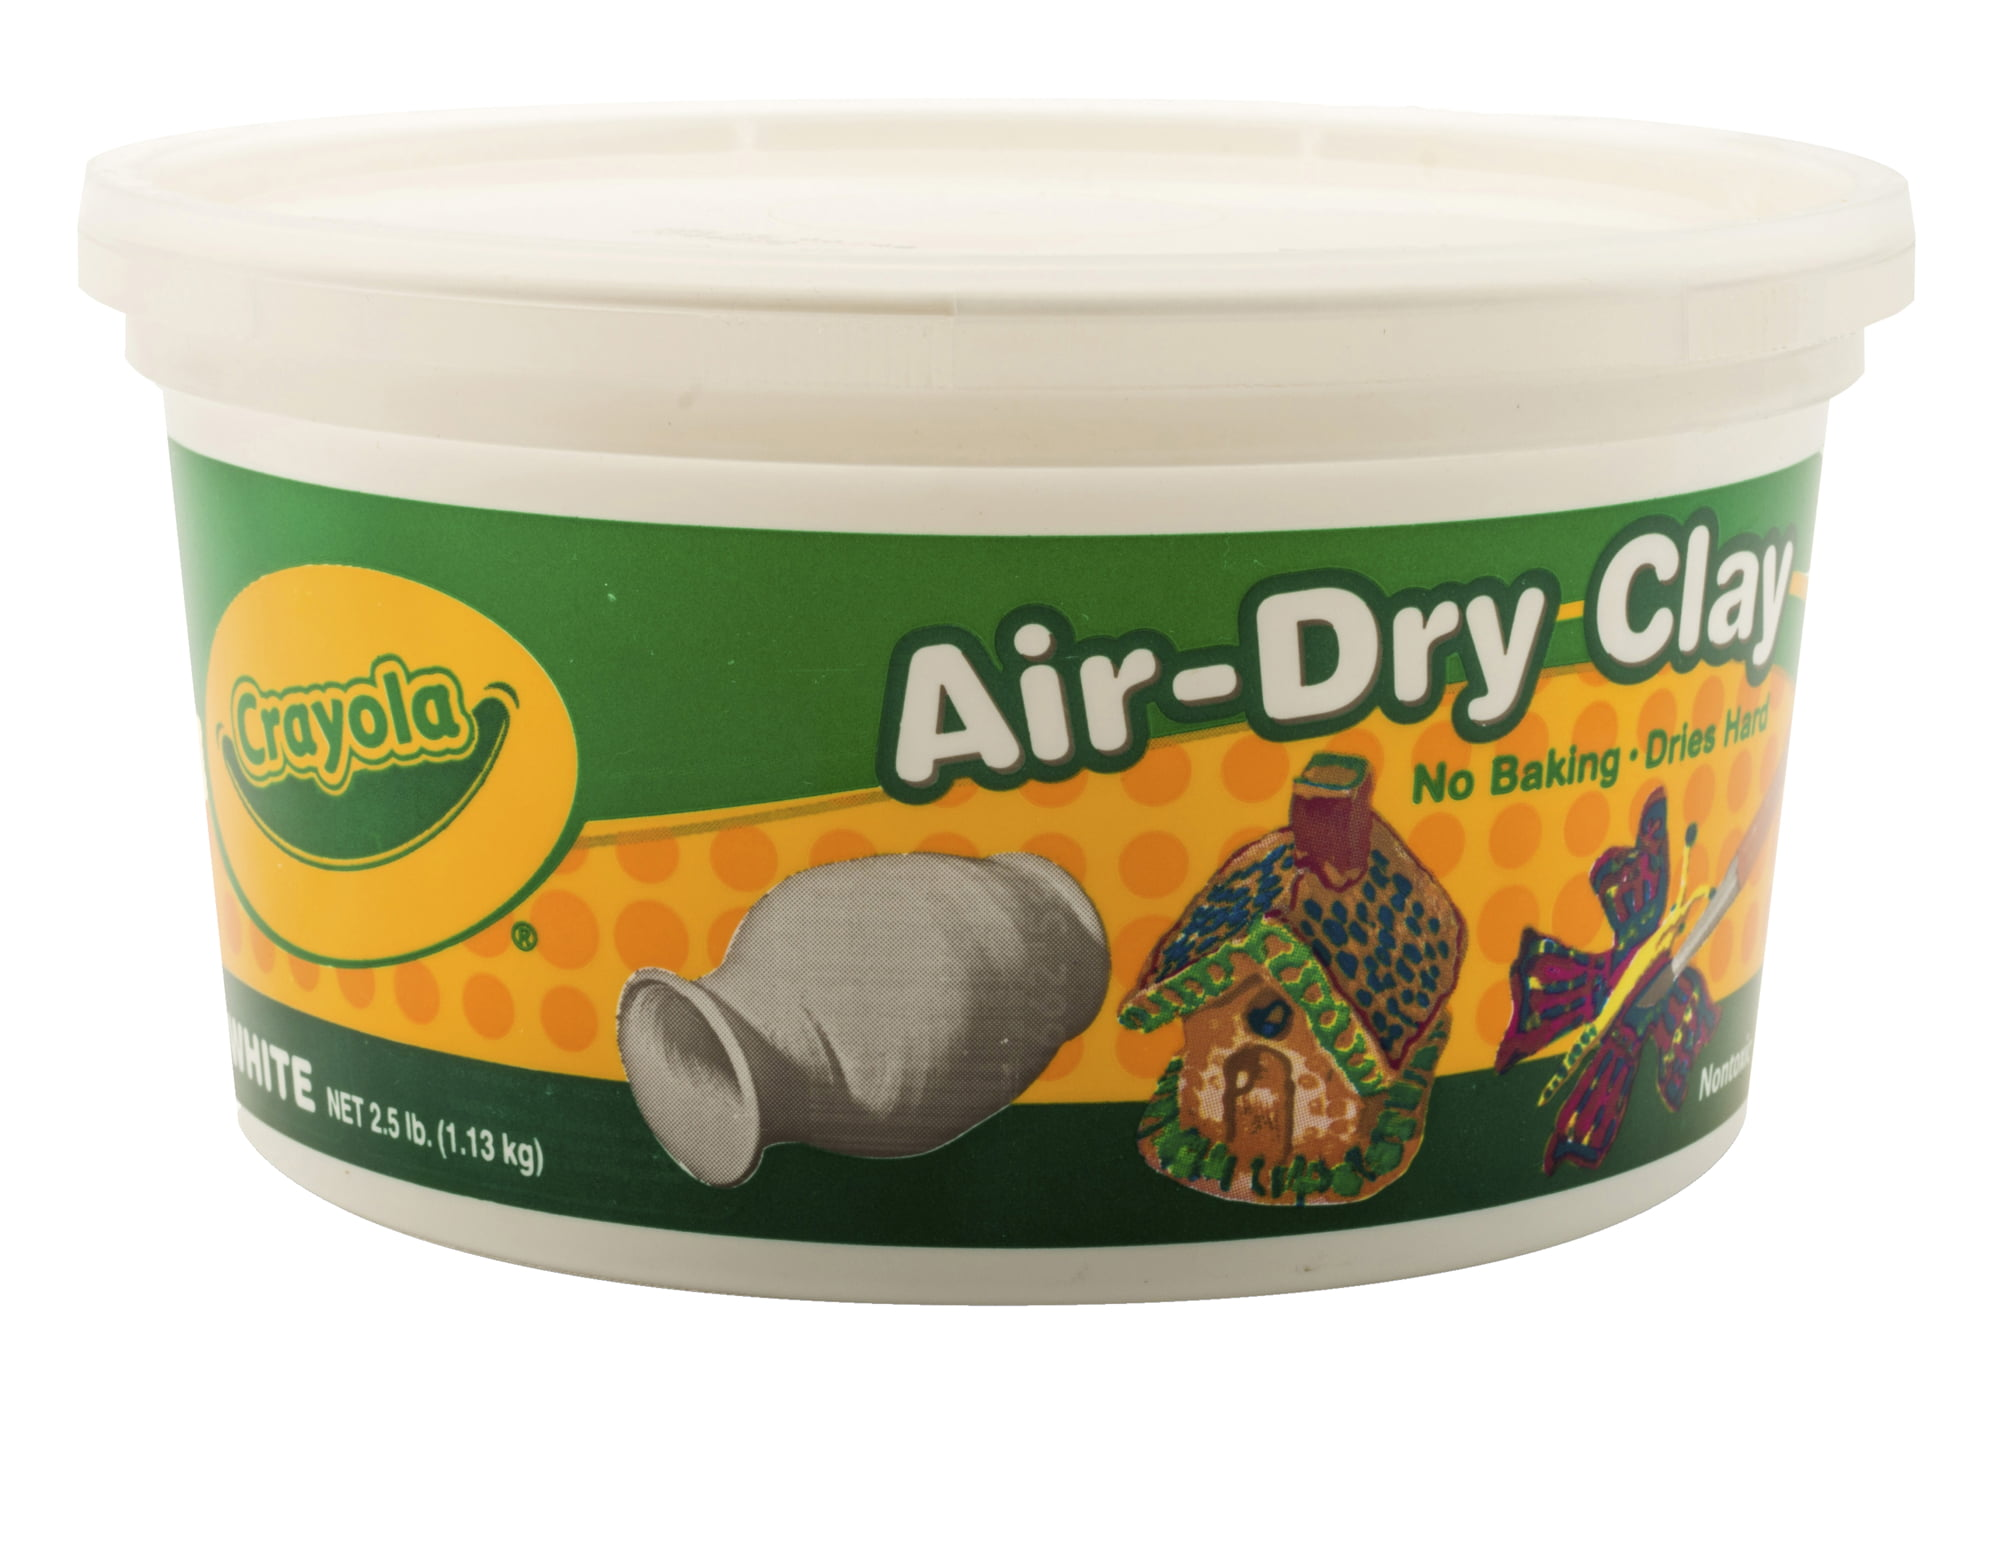 Crayola Air-Dry Easy-to-Use Durable Non-Toxic Self-Hardening Modeling Clay, 5 lb Bucket,... by Crayola LLC